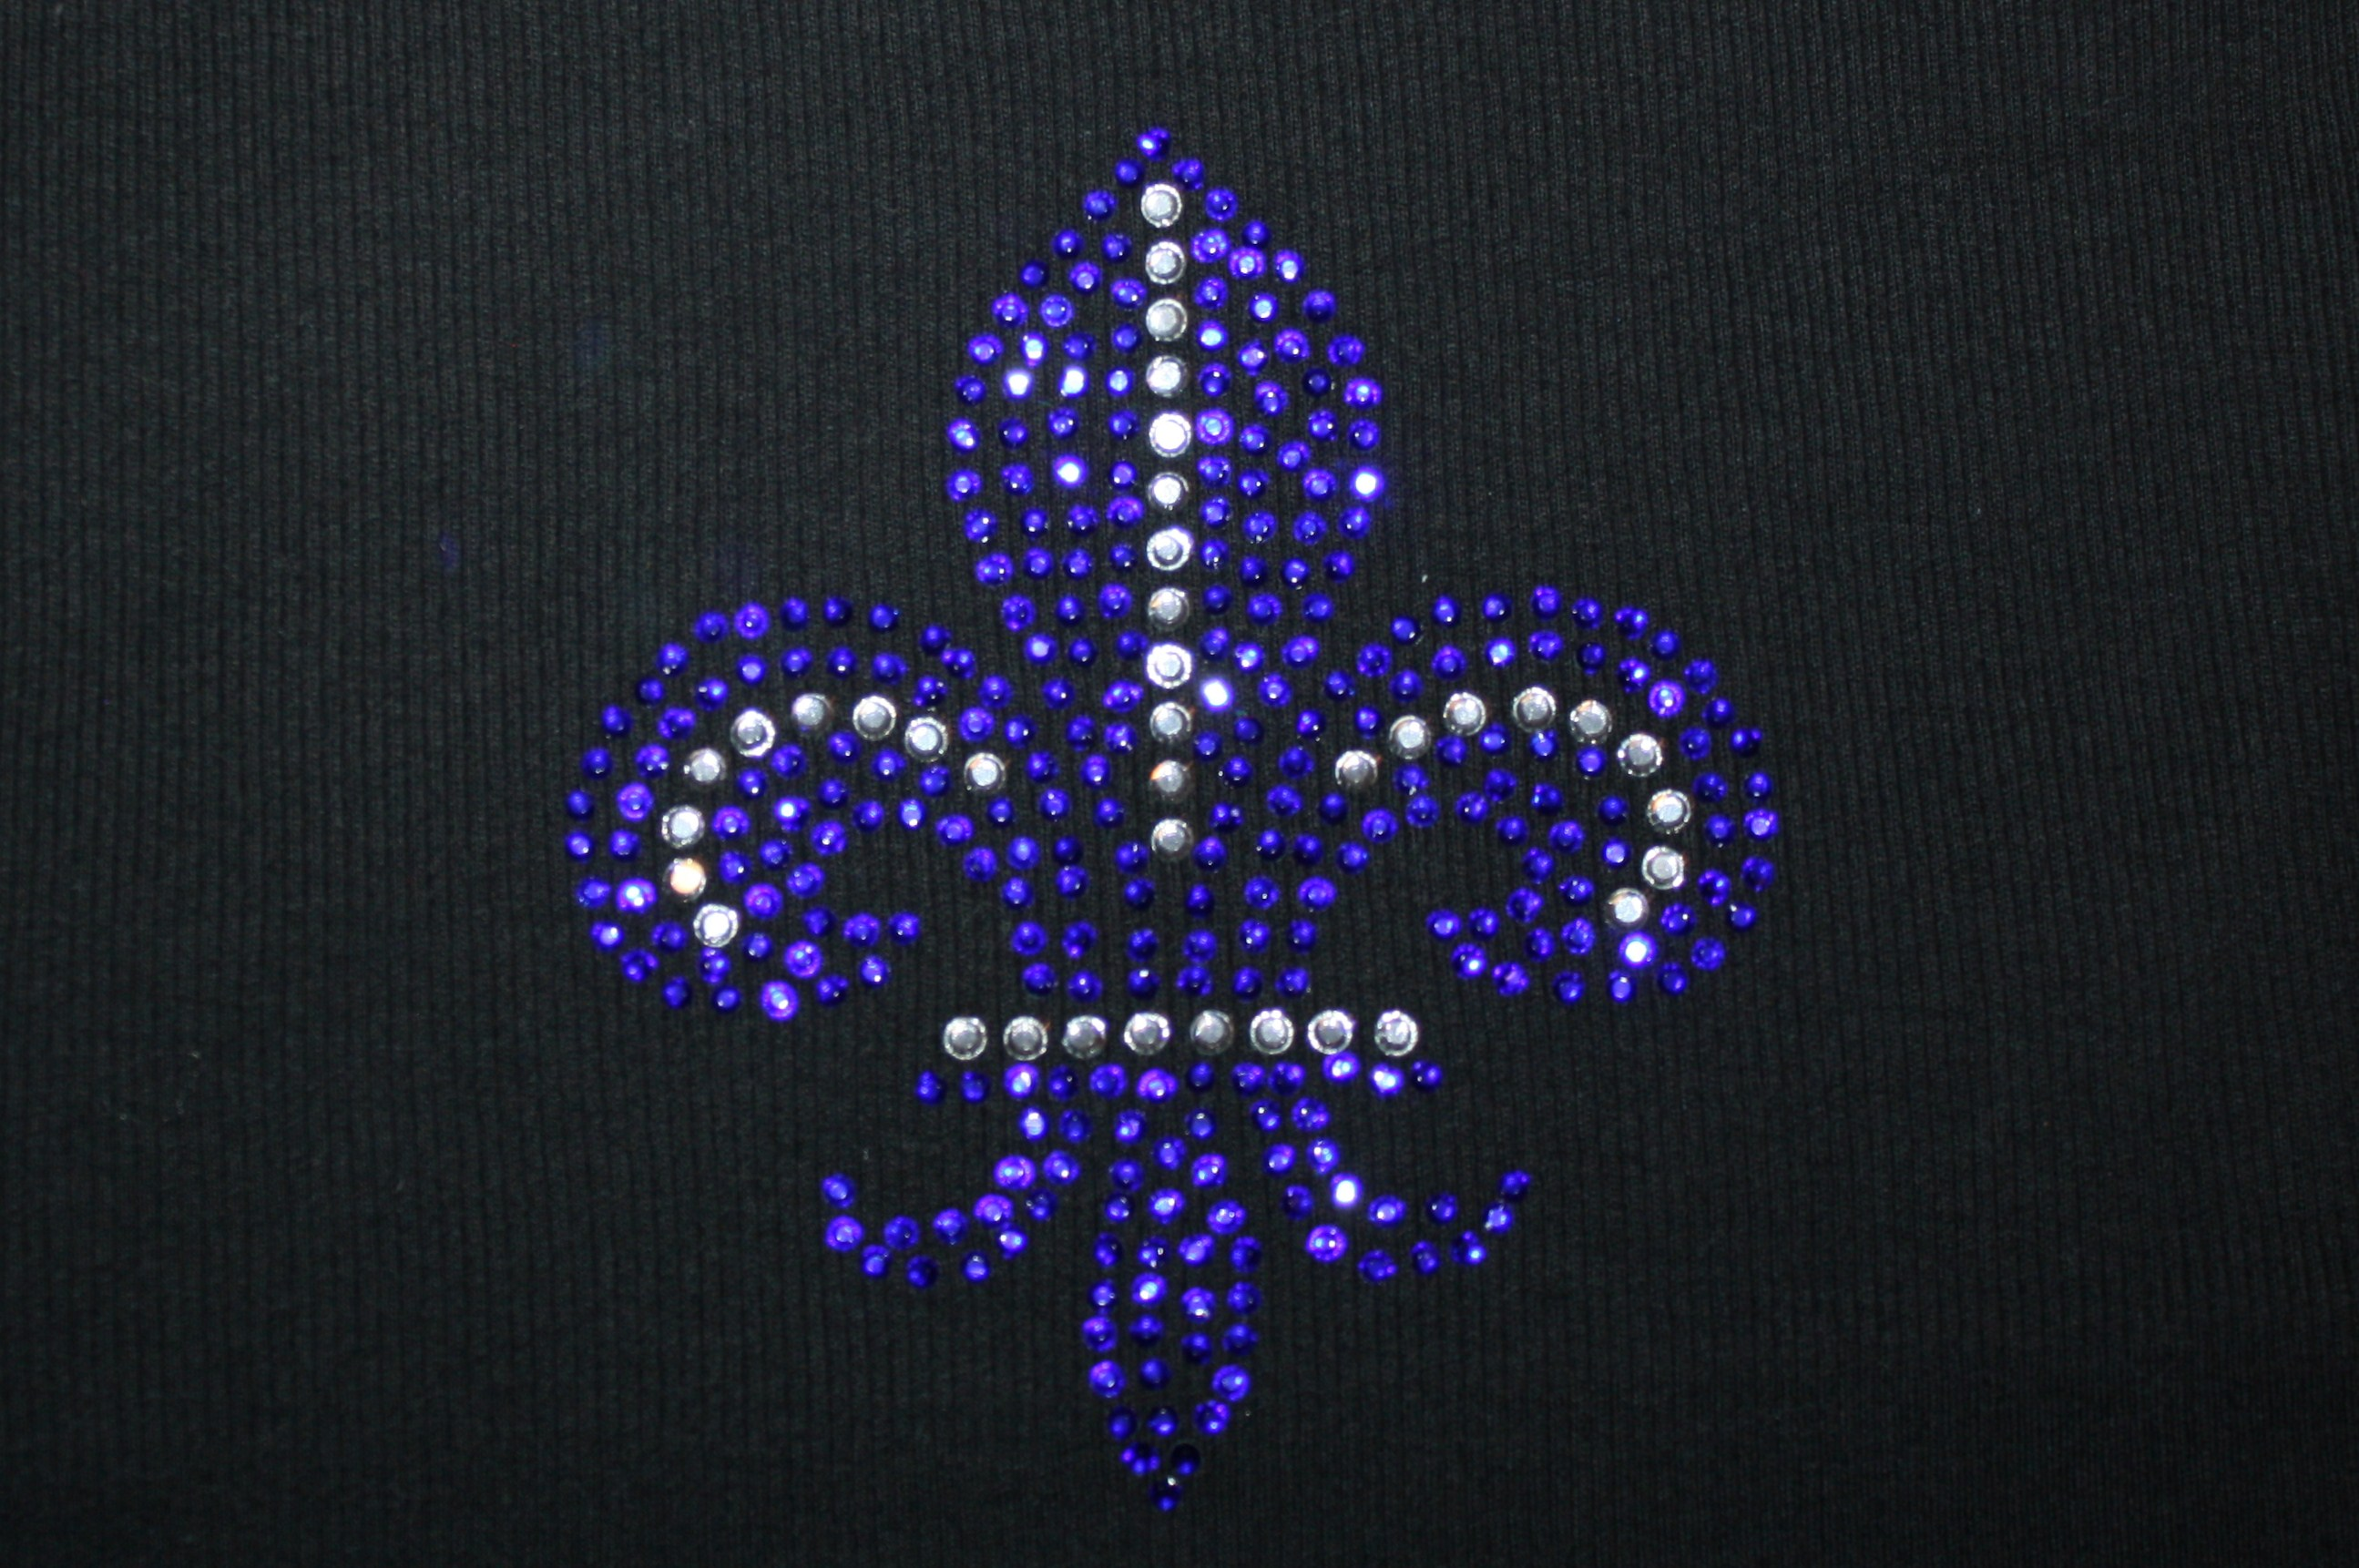 Blue_and_white_fleur_de_lis_on_black_original